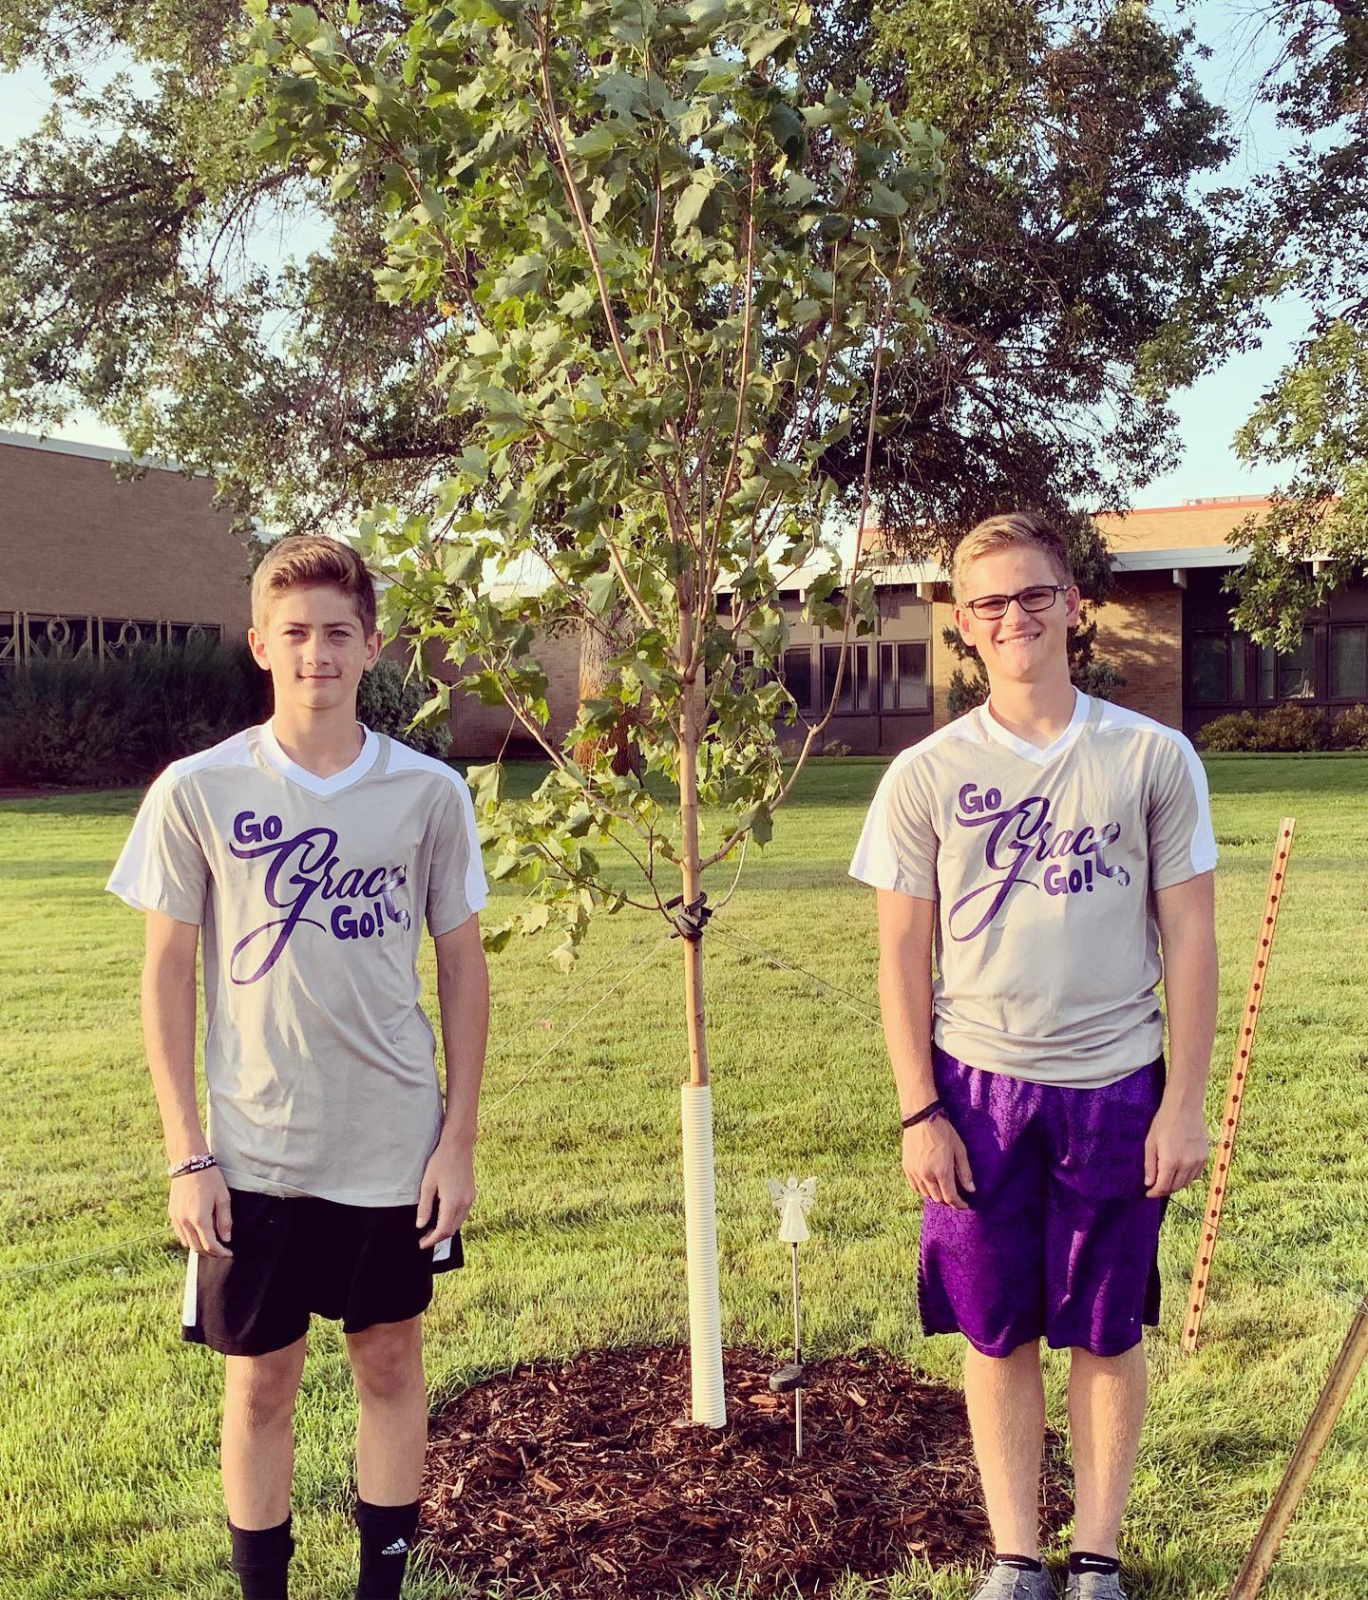 Owen and Grant by Grace's Memorial tree at Lincoln Elementary School